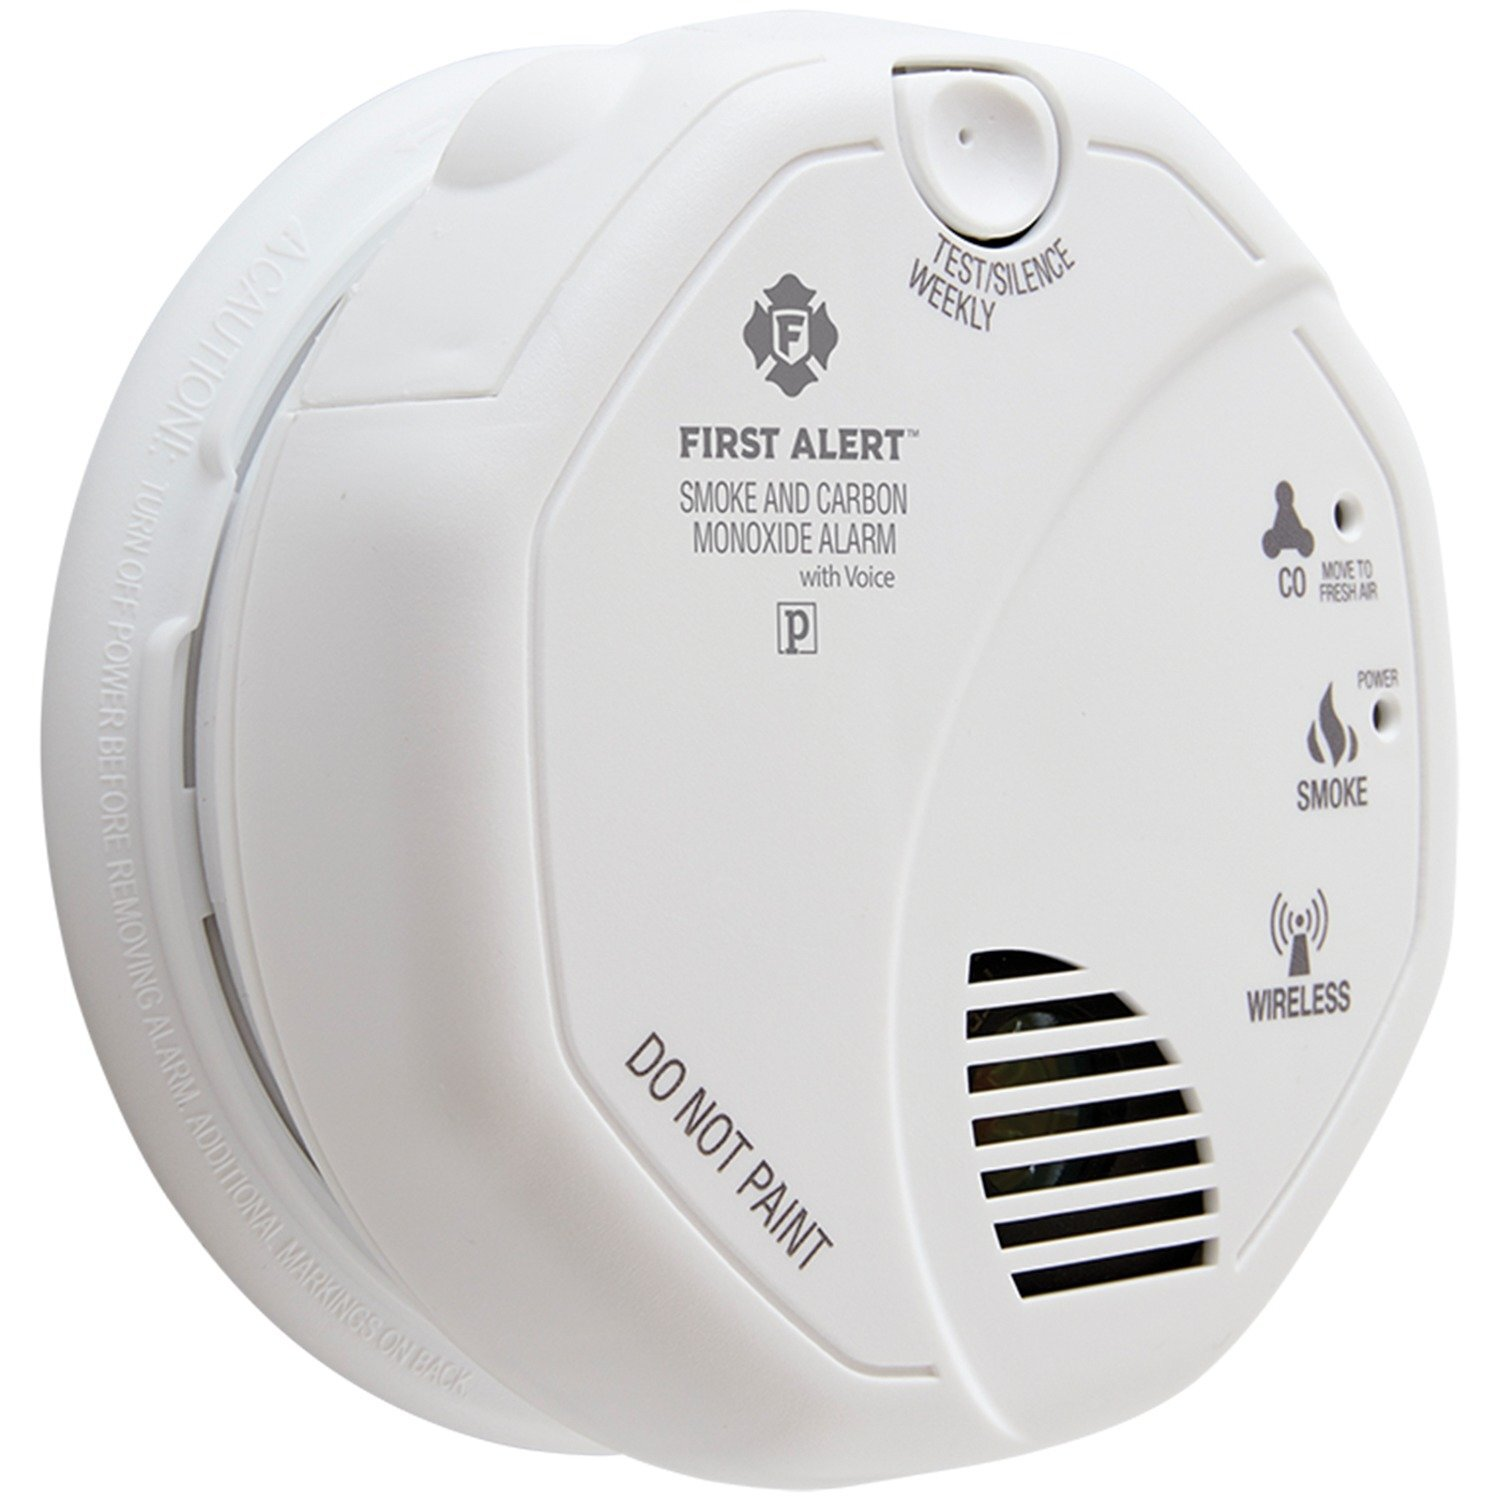 First Alert Smoke and Carbon Monoxide Alarm with Voice